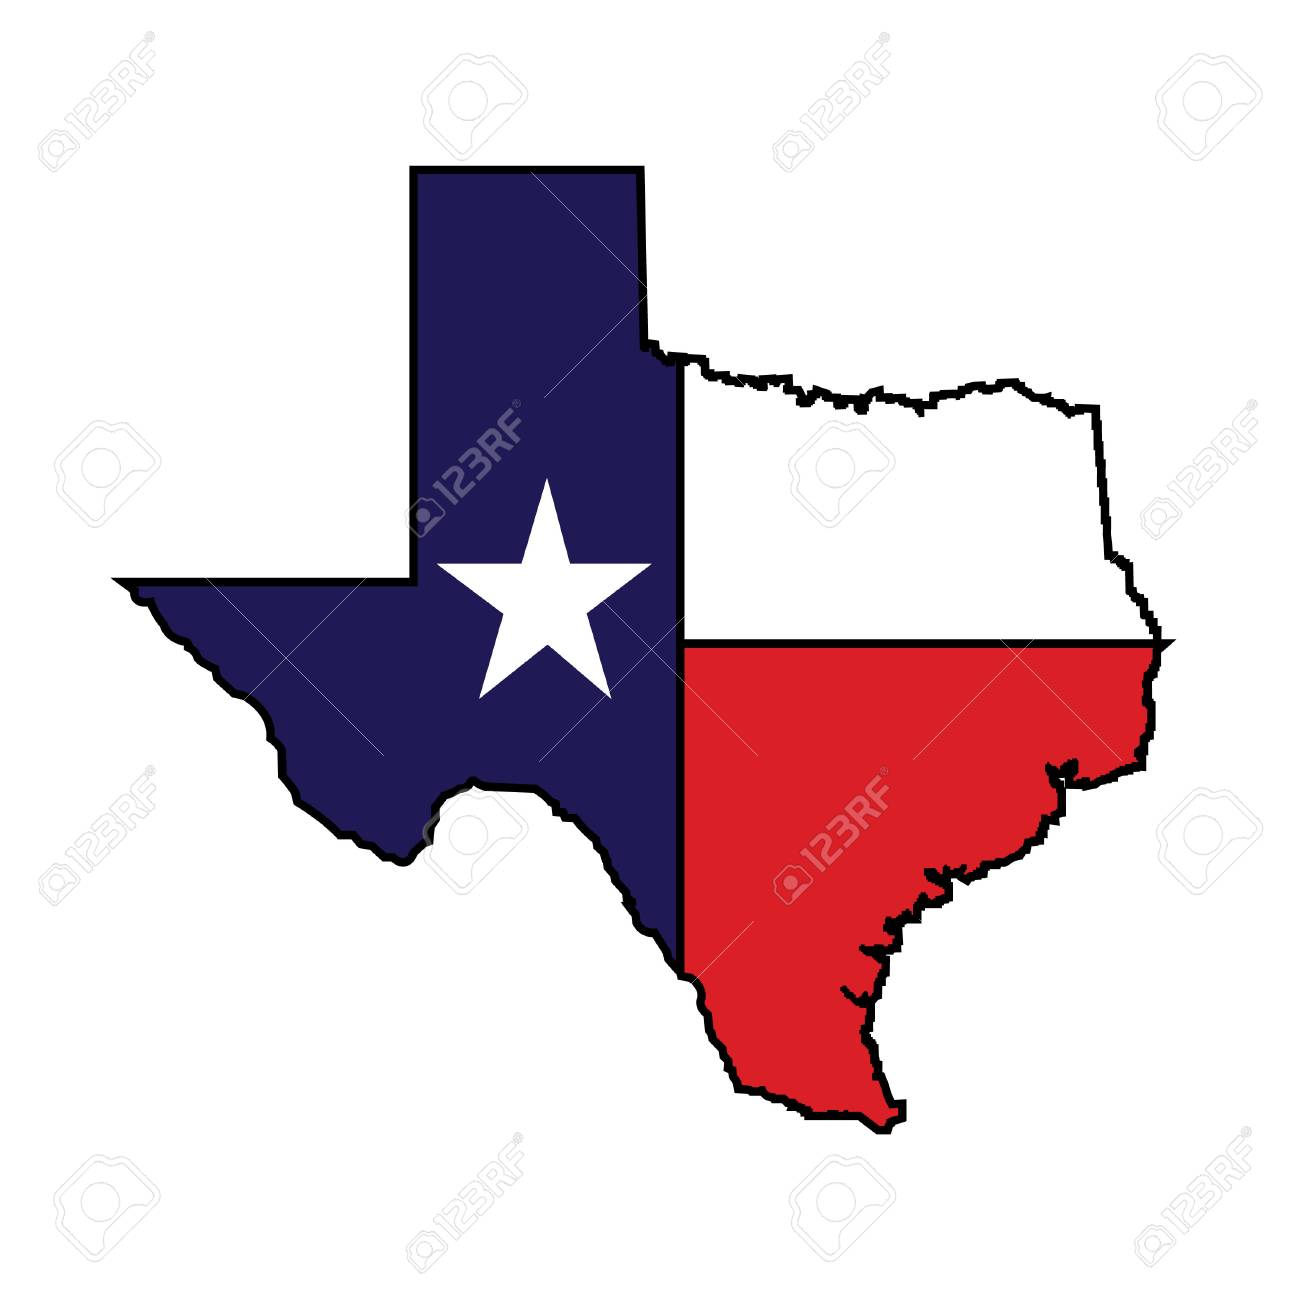 U.s. State Of Texas Map Vector Logo Design. Royalty Free Cliparts - Texas Map Vector Free